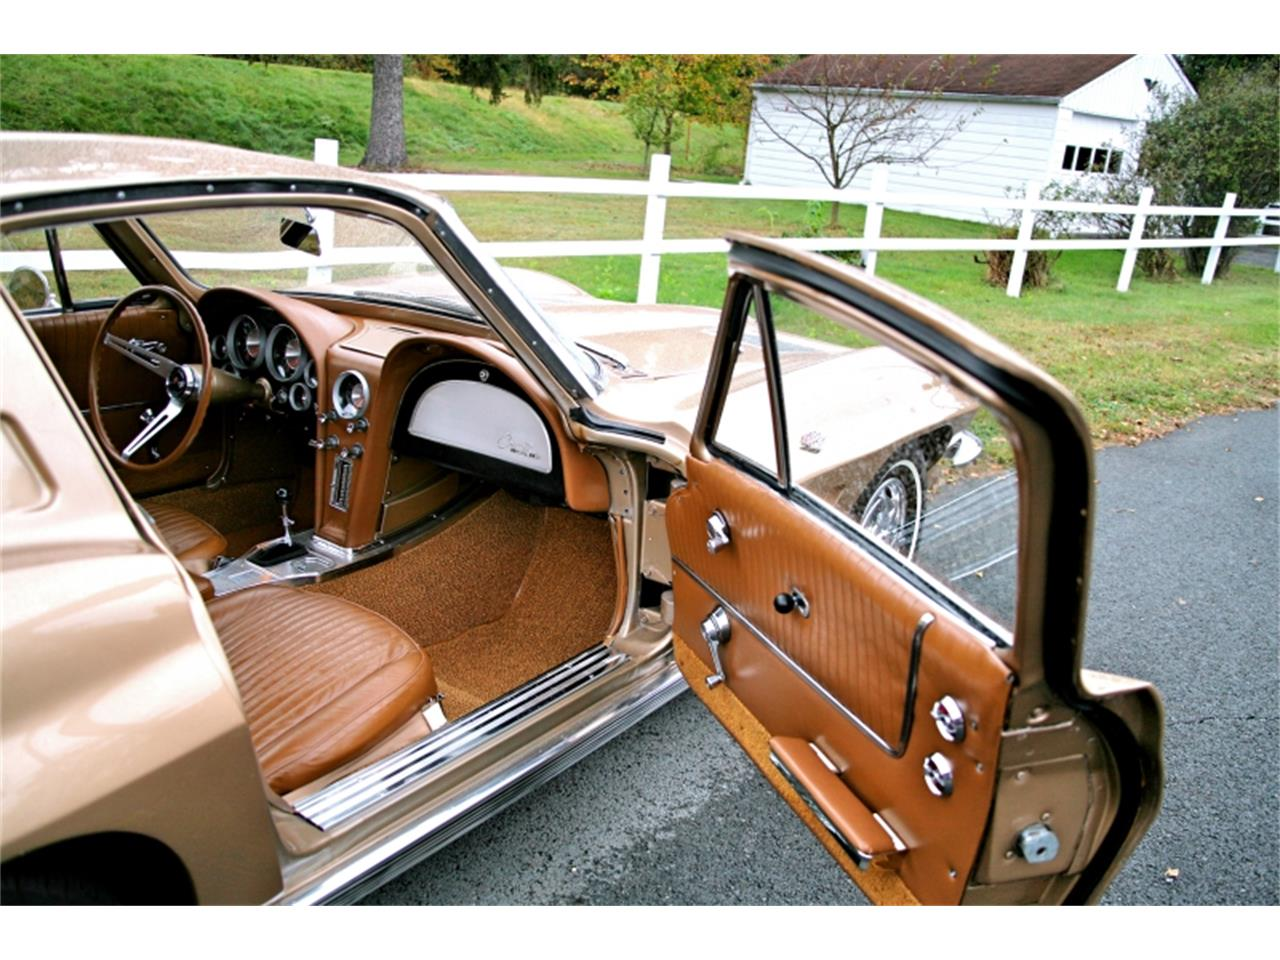 Large Picture of 1963 Corvette located in Old Forge Pennsylvania - $99,500.00 - MK1L